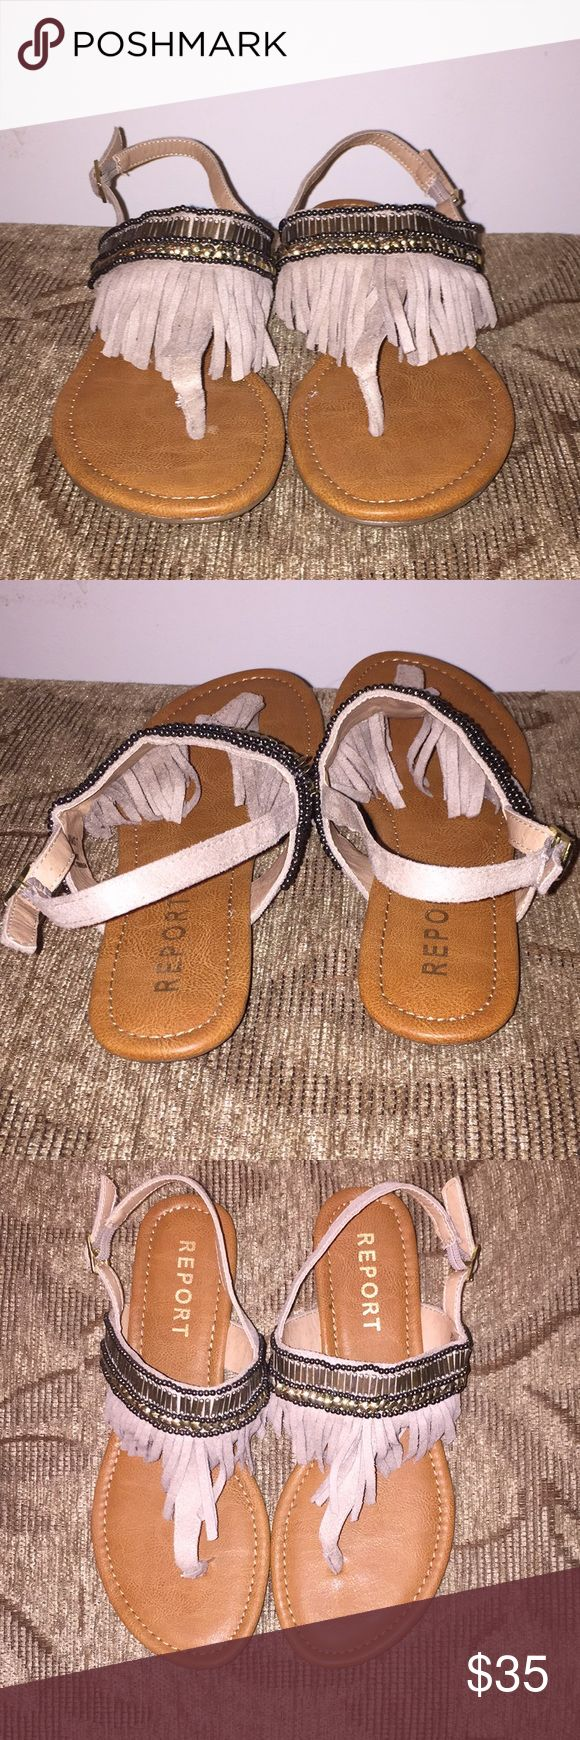 Report Summer Sandals Brand New fringed, t strap, beaded sandals. These are a size 7, but are made for narrow feet.  Never worn and in excellent condition! Report Shoes Sandals